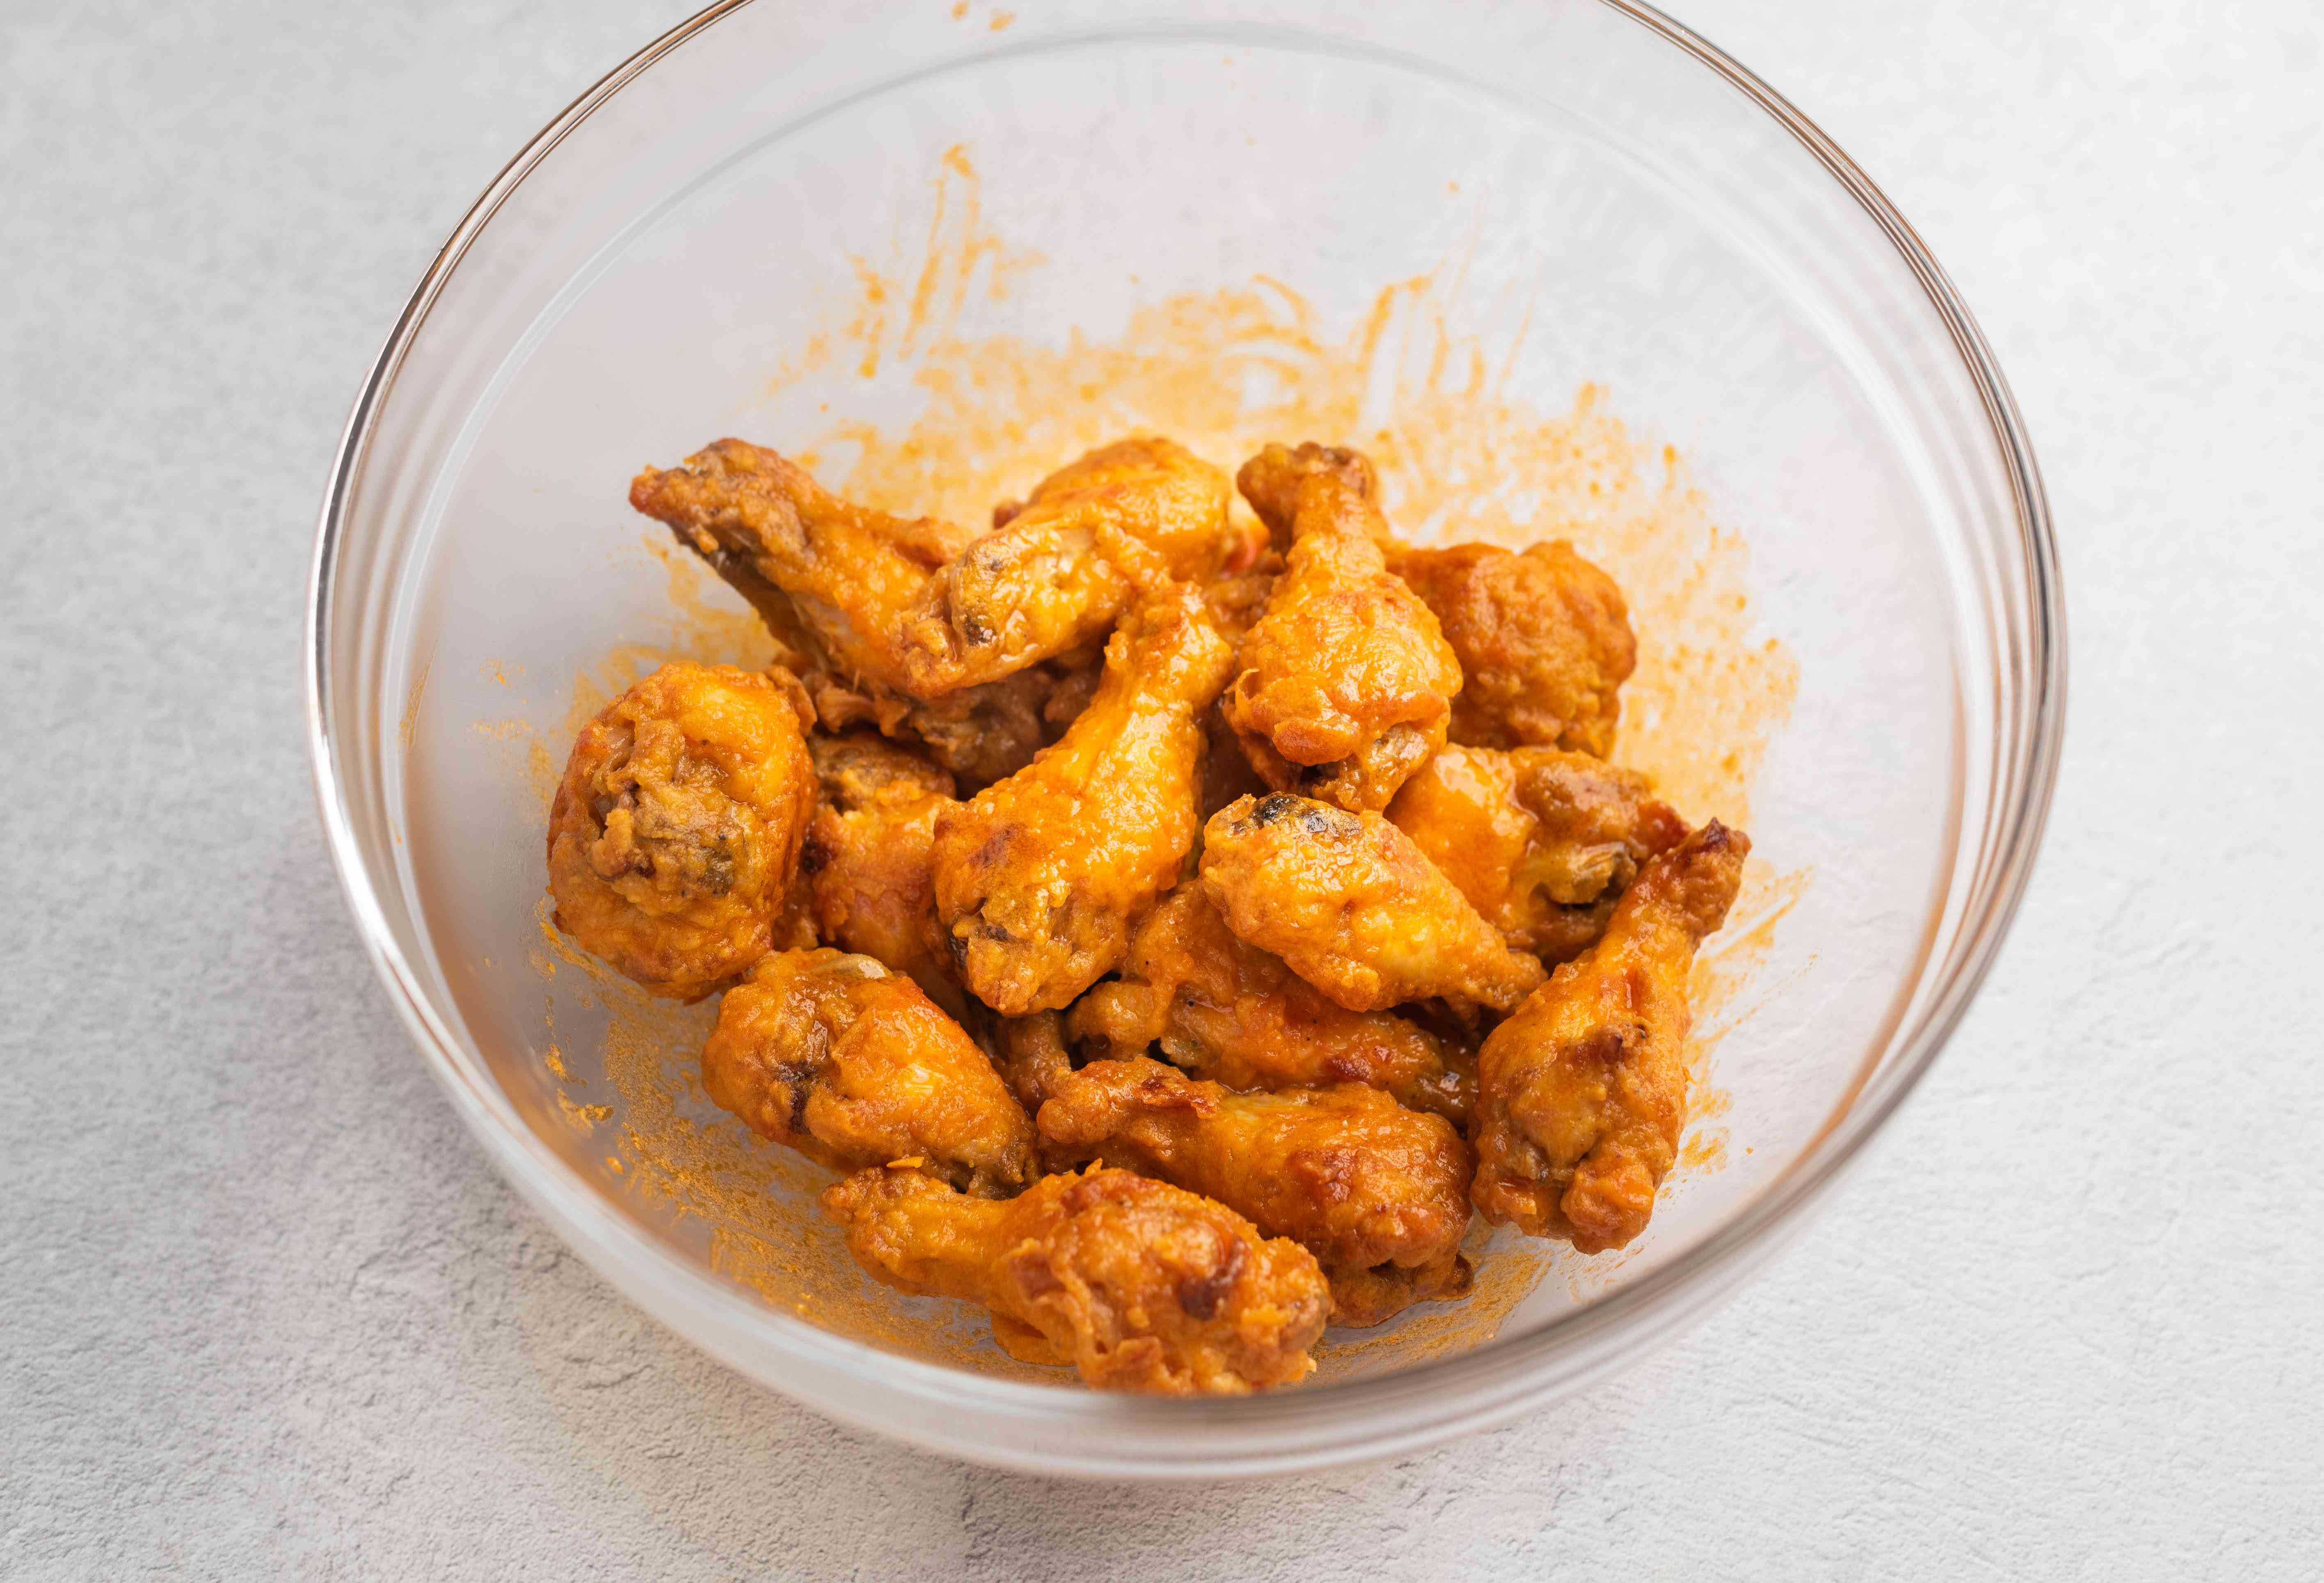 Wings tossed with sauce in a bowl